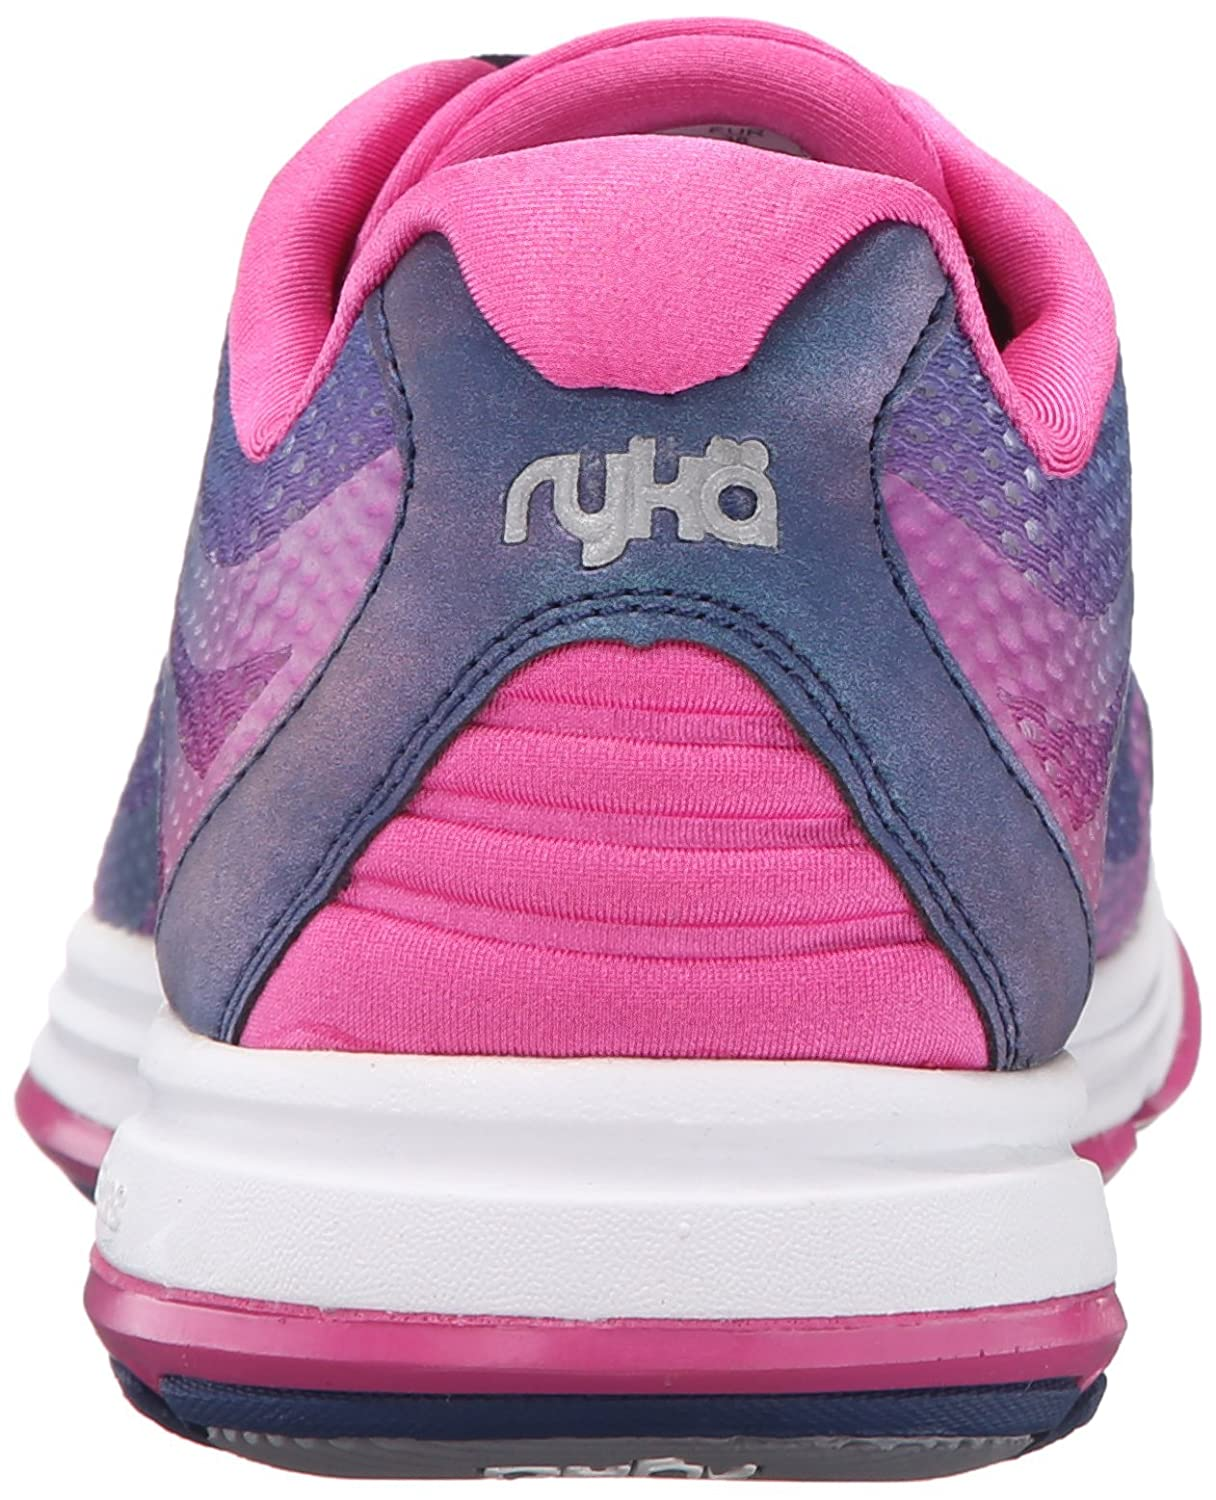 Ryka Women's Devo Plus 2 Walking Shoe B01A62VY4W 6.5 W US|Blue/Pink